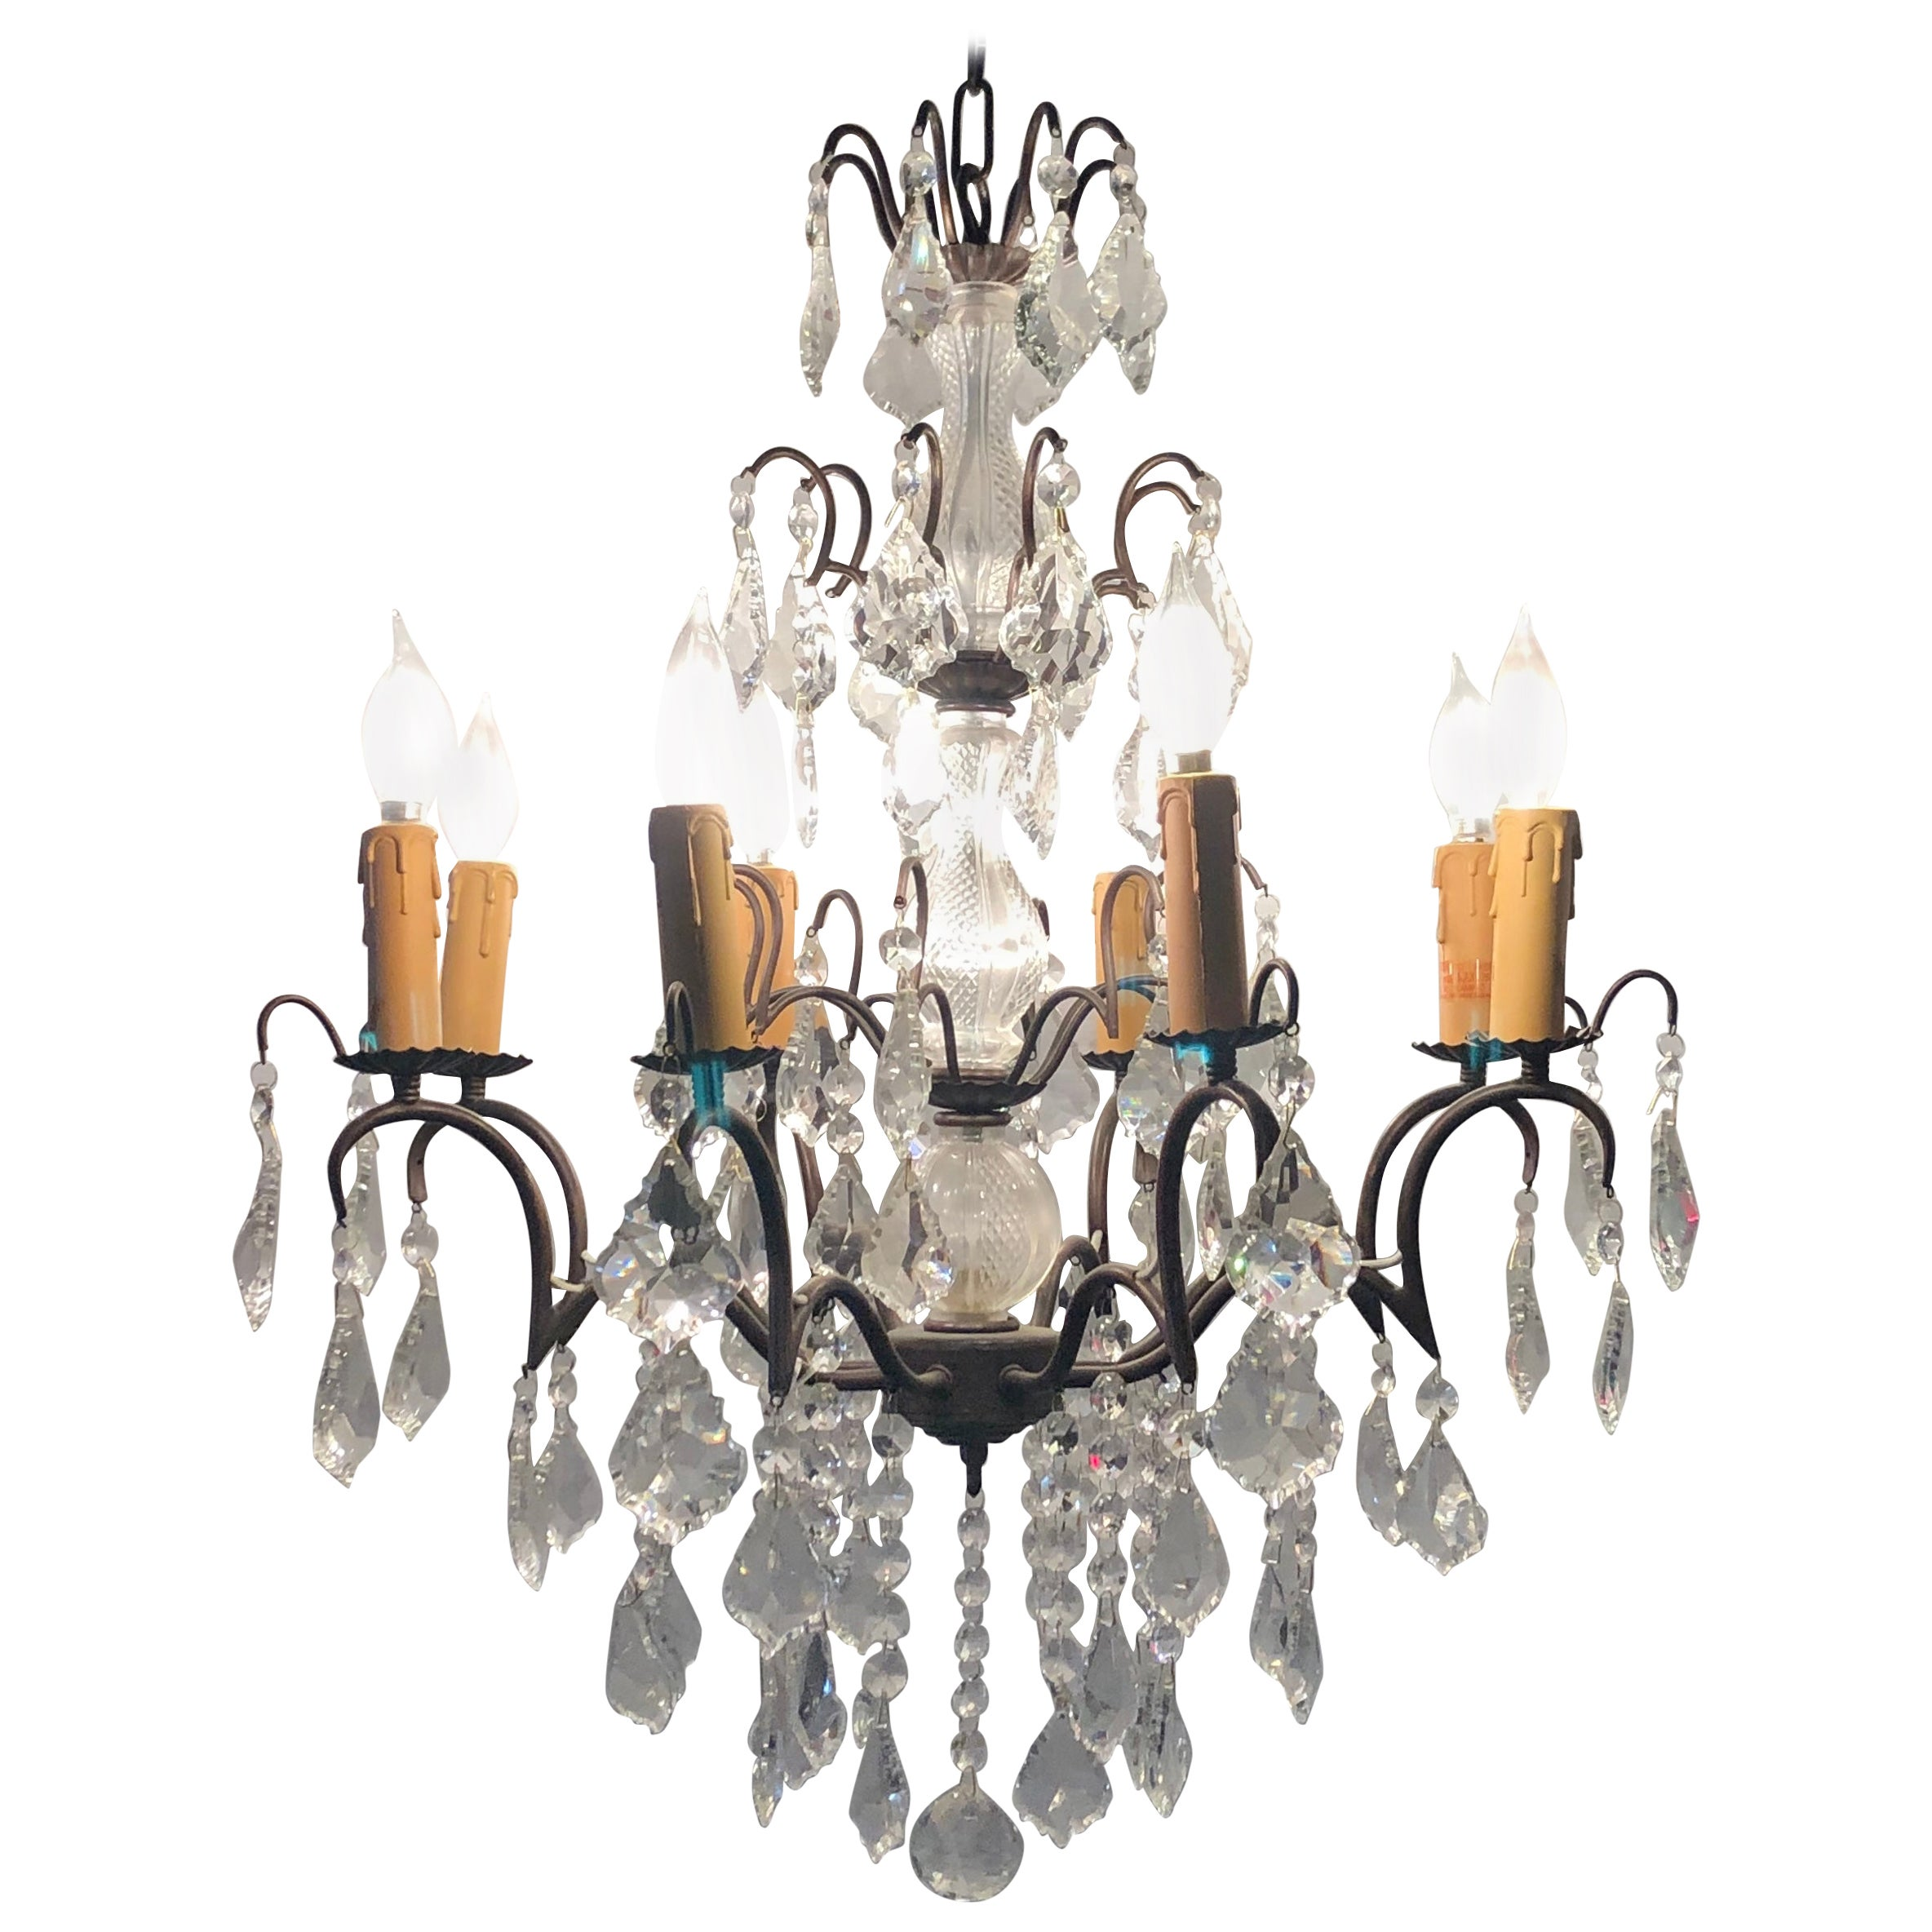 Copper Designed Metal and Crystal Chandelier with Centre Cut Glass Column